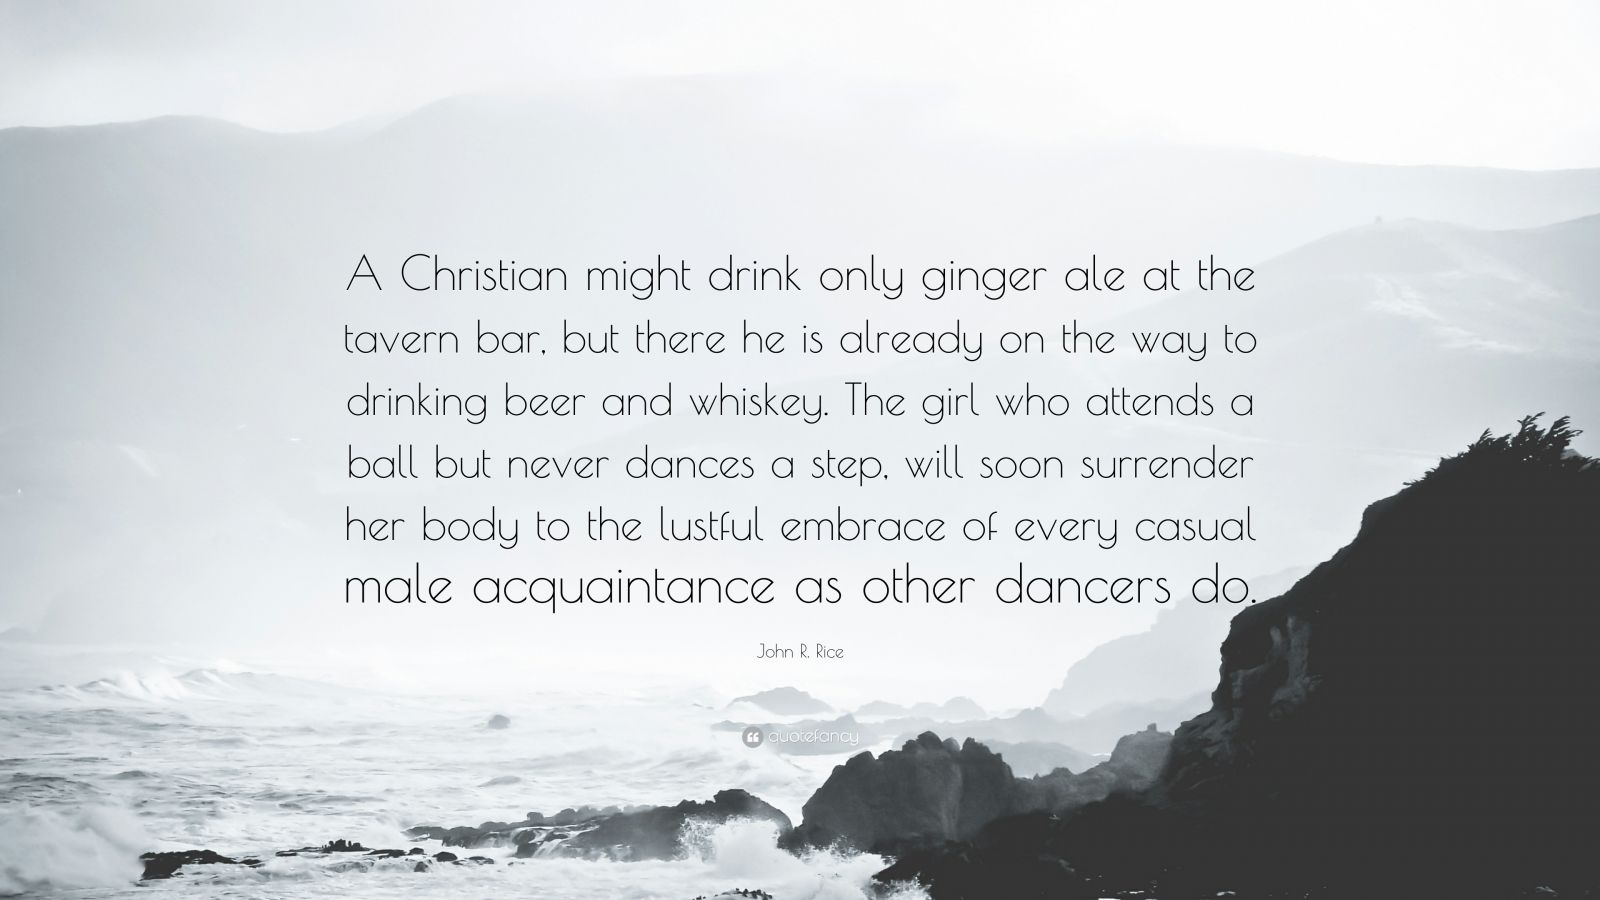 "John R. Rice Quote: ""A Christian might drink only ginger ale at the tavern bar, but there he is already on the way to drinking beer and whiskey. The girl who attends a ball but never dances a step, will soon surrender her body to the lustful embrace of every casual male acquaintance as other dancers do."""